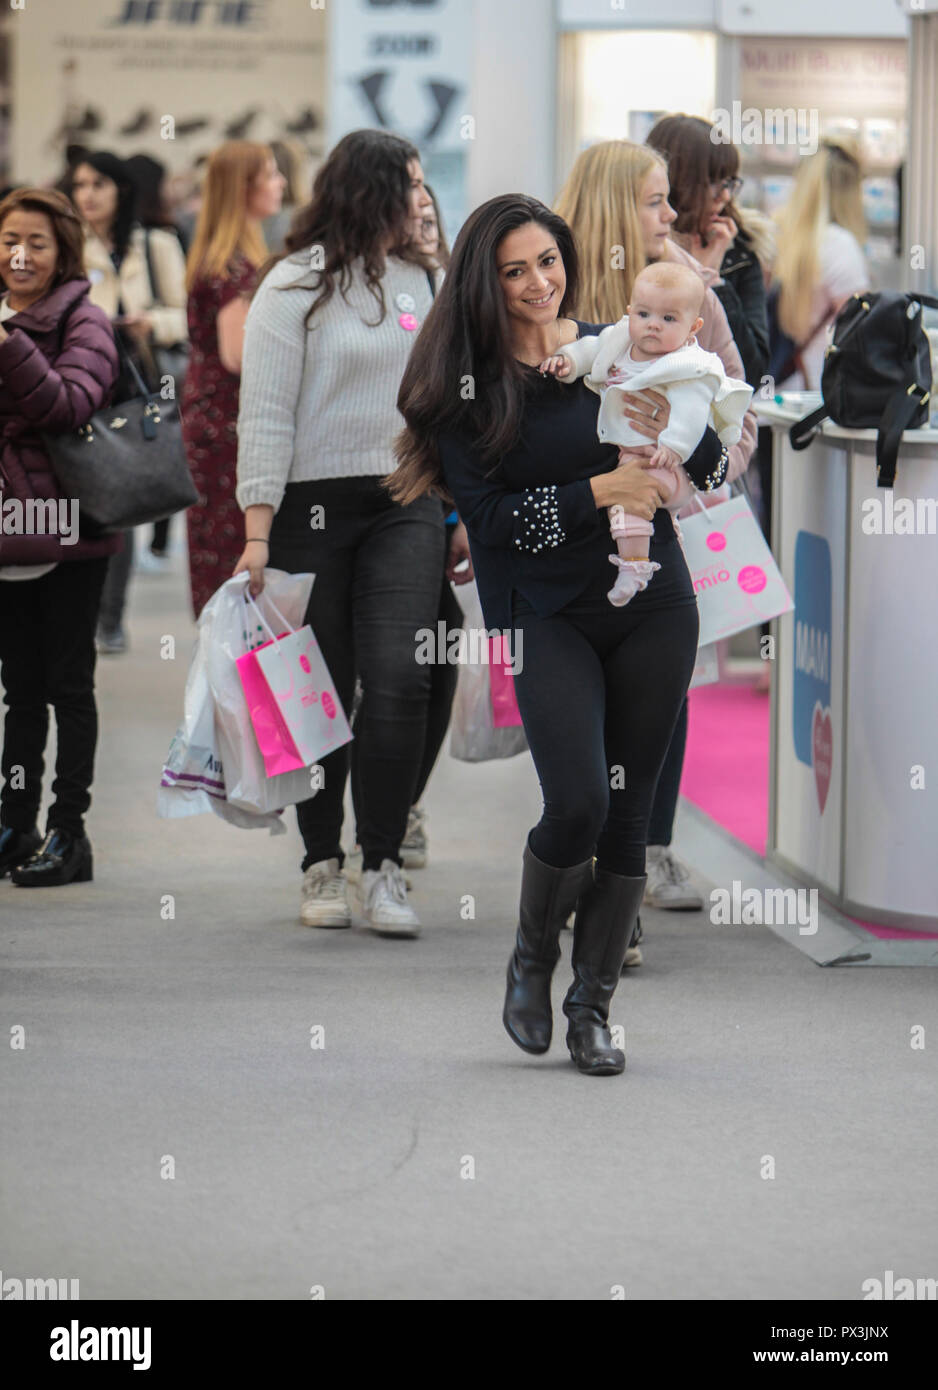 London Uk 19 October 2018 Casey Batchelor and baby model shot to fame when she appeared  Celebrity Big Brother.,with baby Florence visiting The Baby Show in the Olympia center today ,billed as ' The UK's favourite shopping event for new and expectant parents'  with the presence of the biggest name in the high street to the biggest name in celebrities parents ,@Paul Quezada-Neiman/Alamy Live News - Stock Image